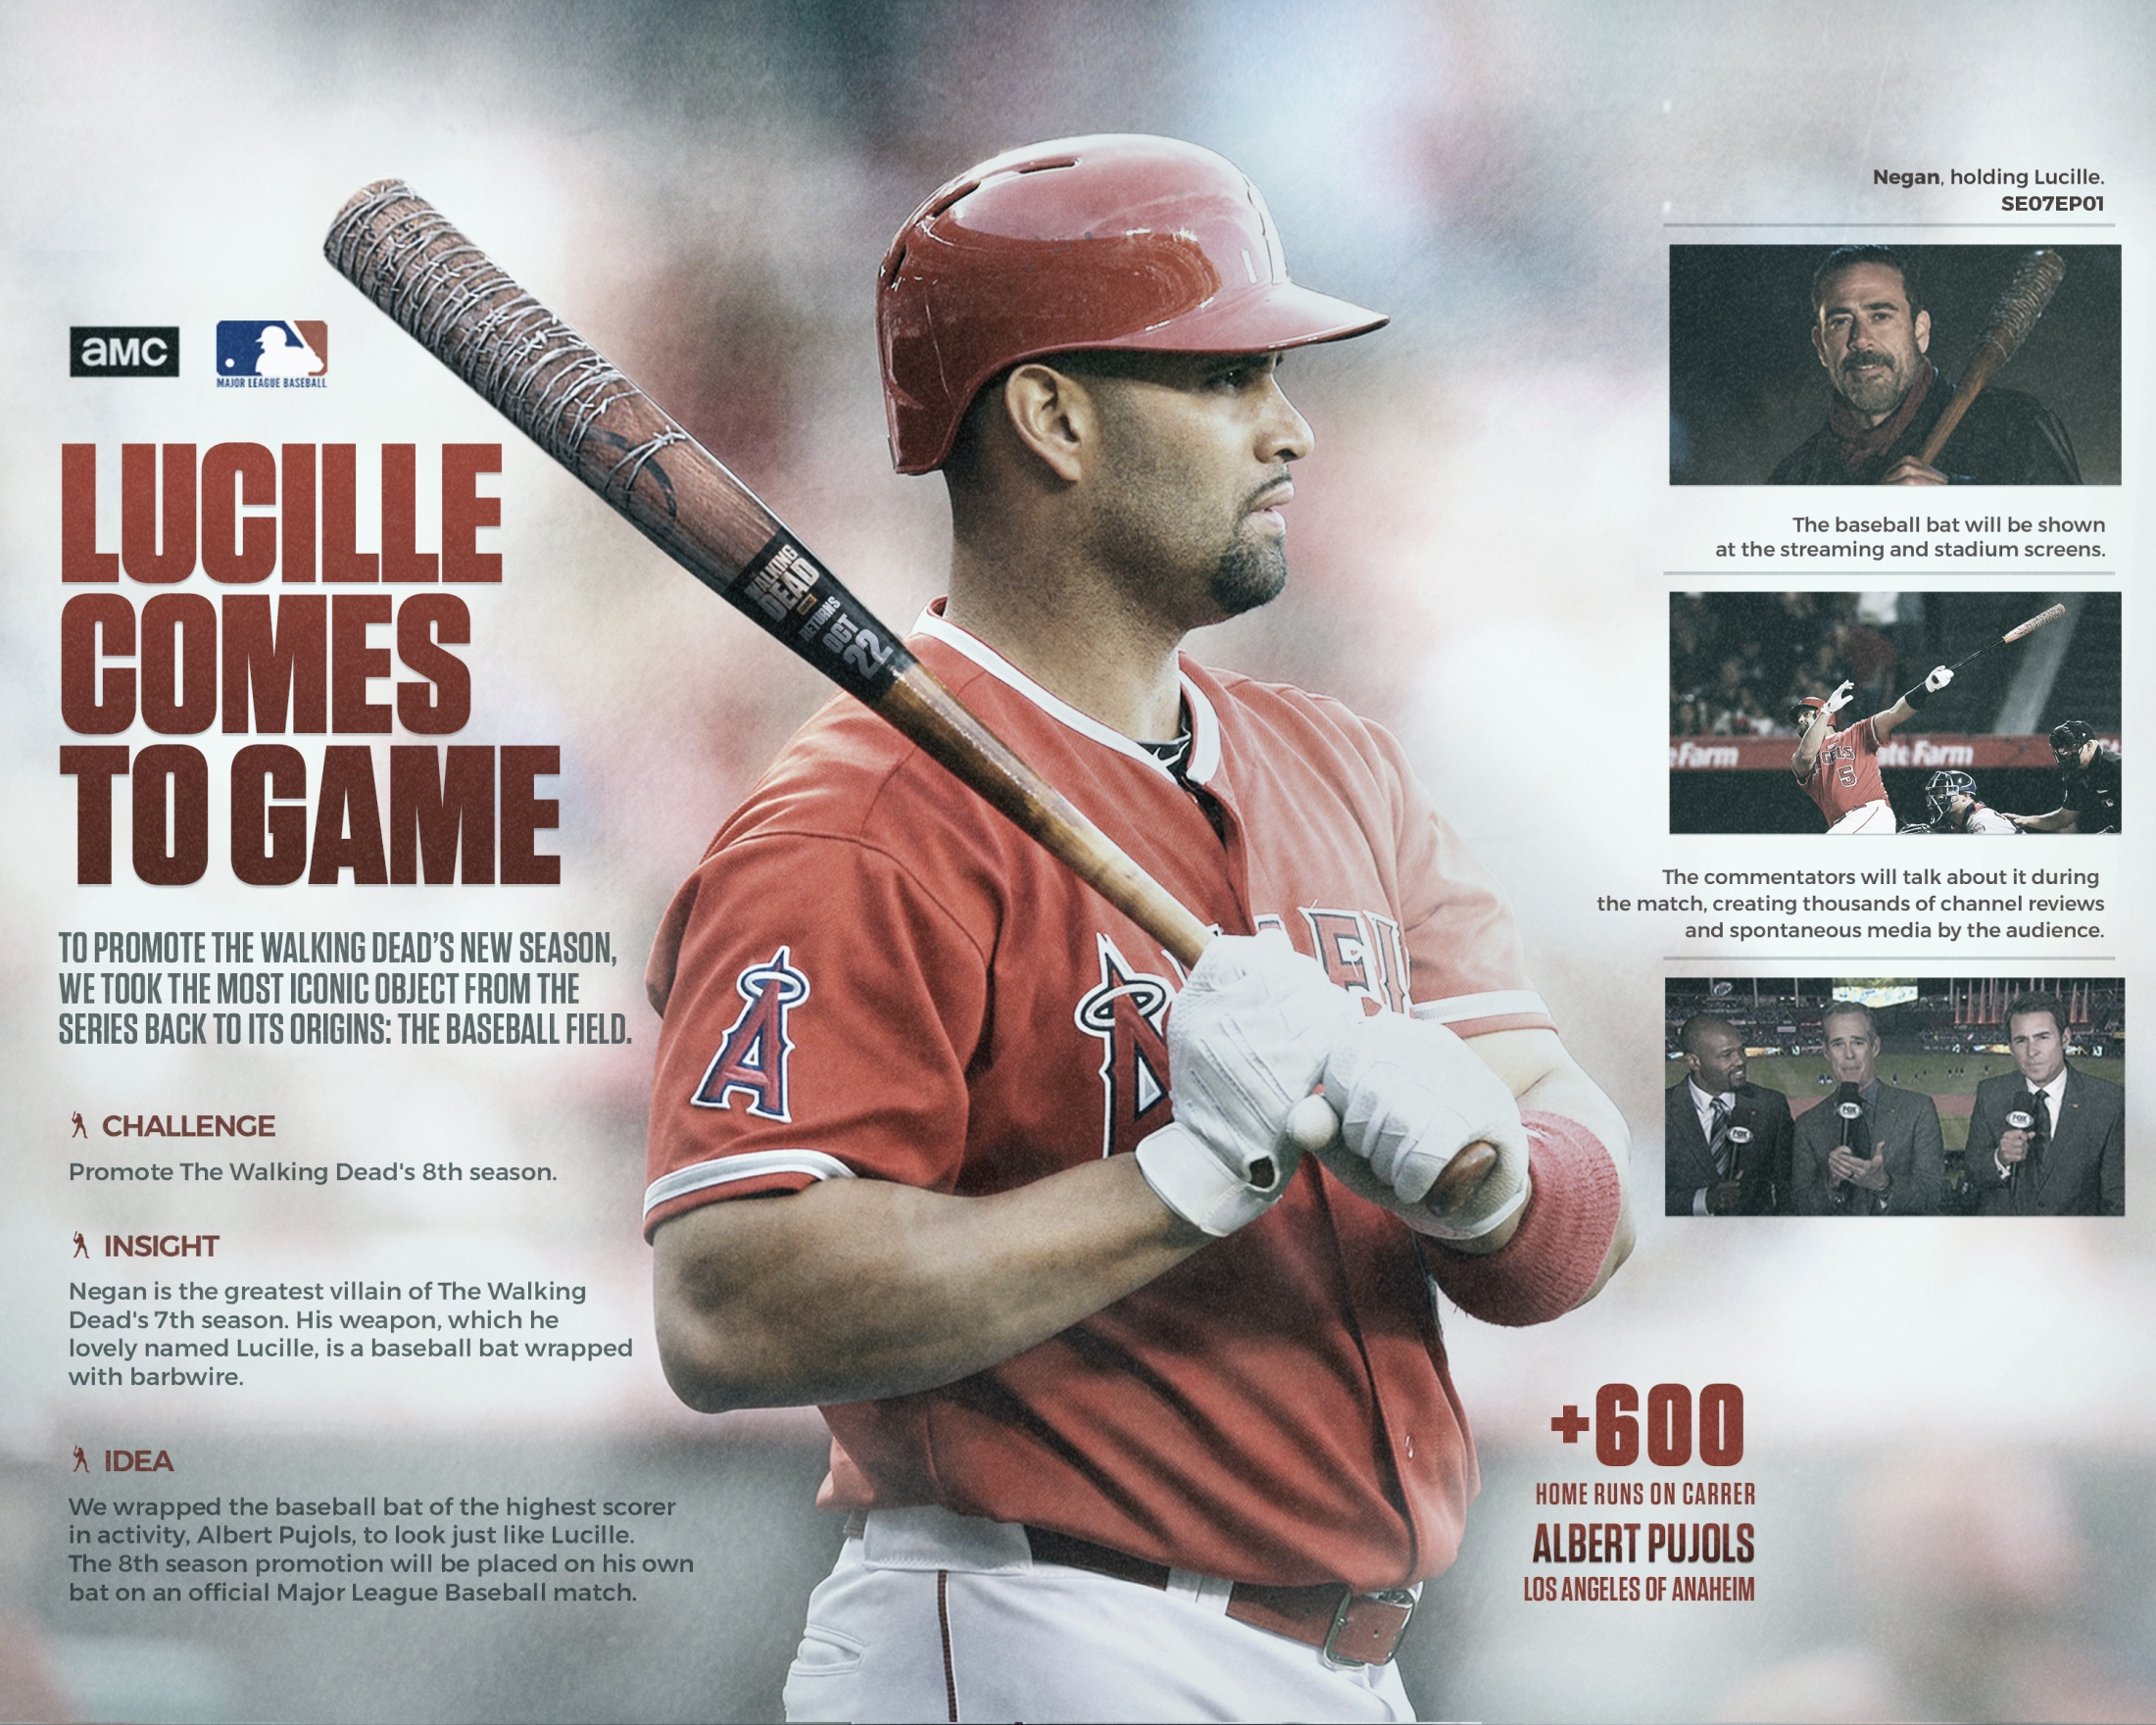 Image Media for Lucille Comes to Game